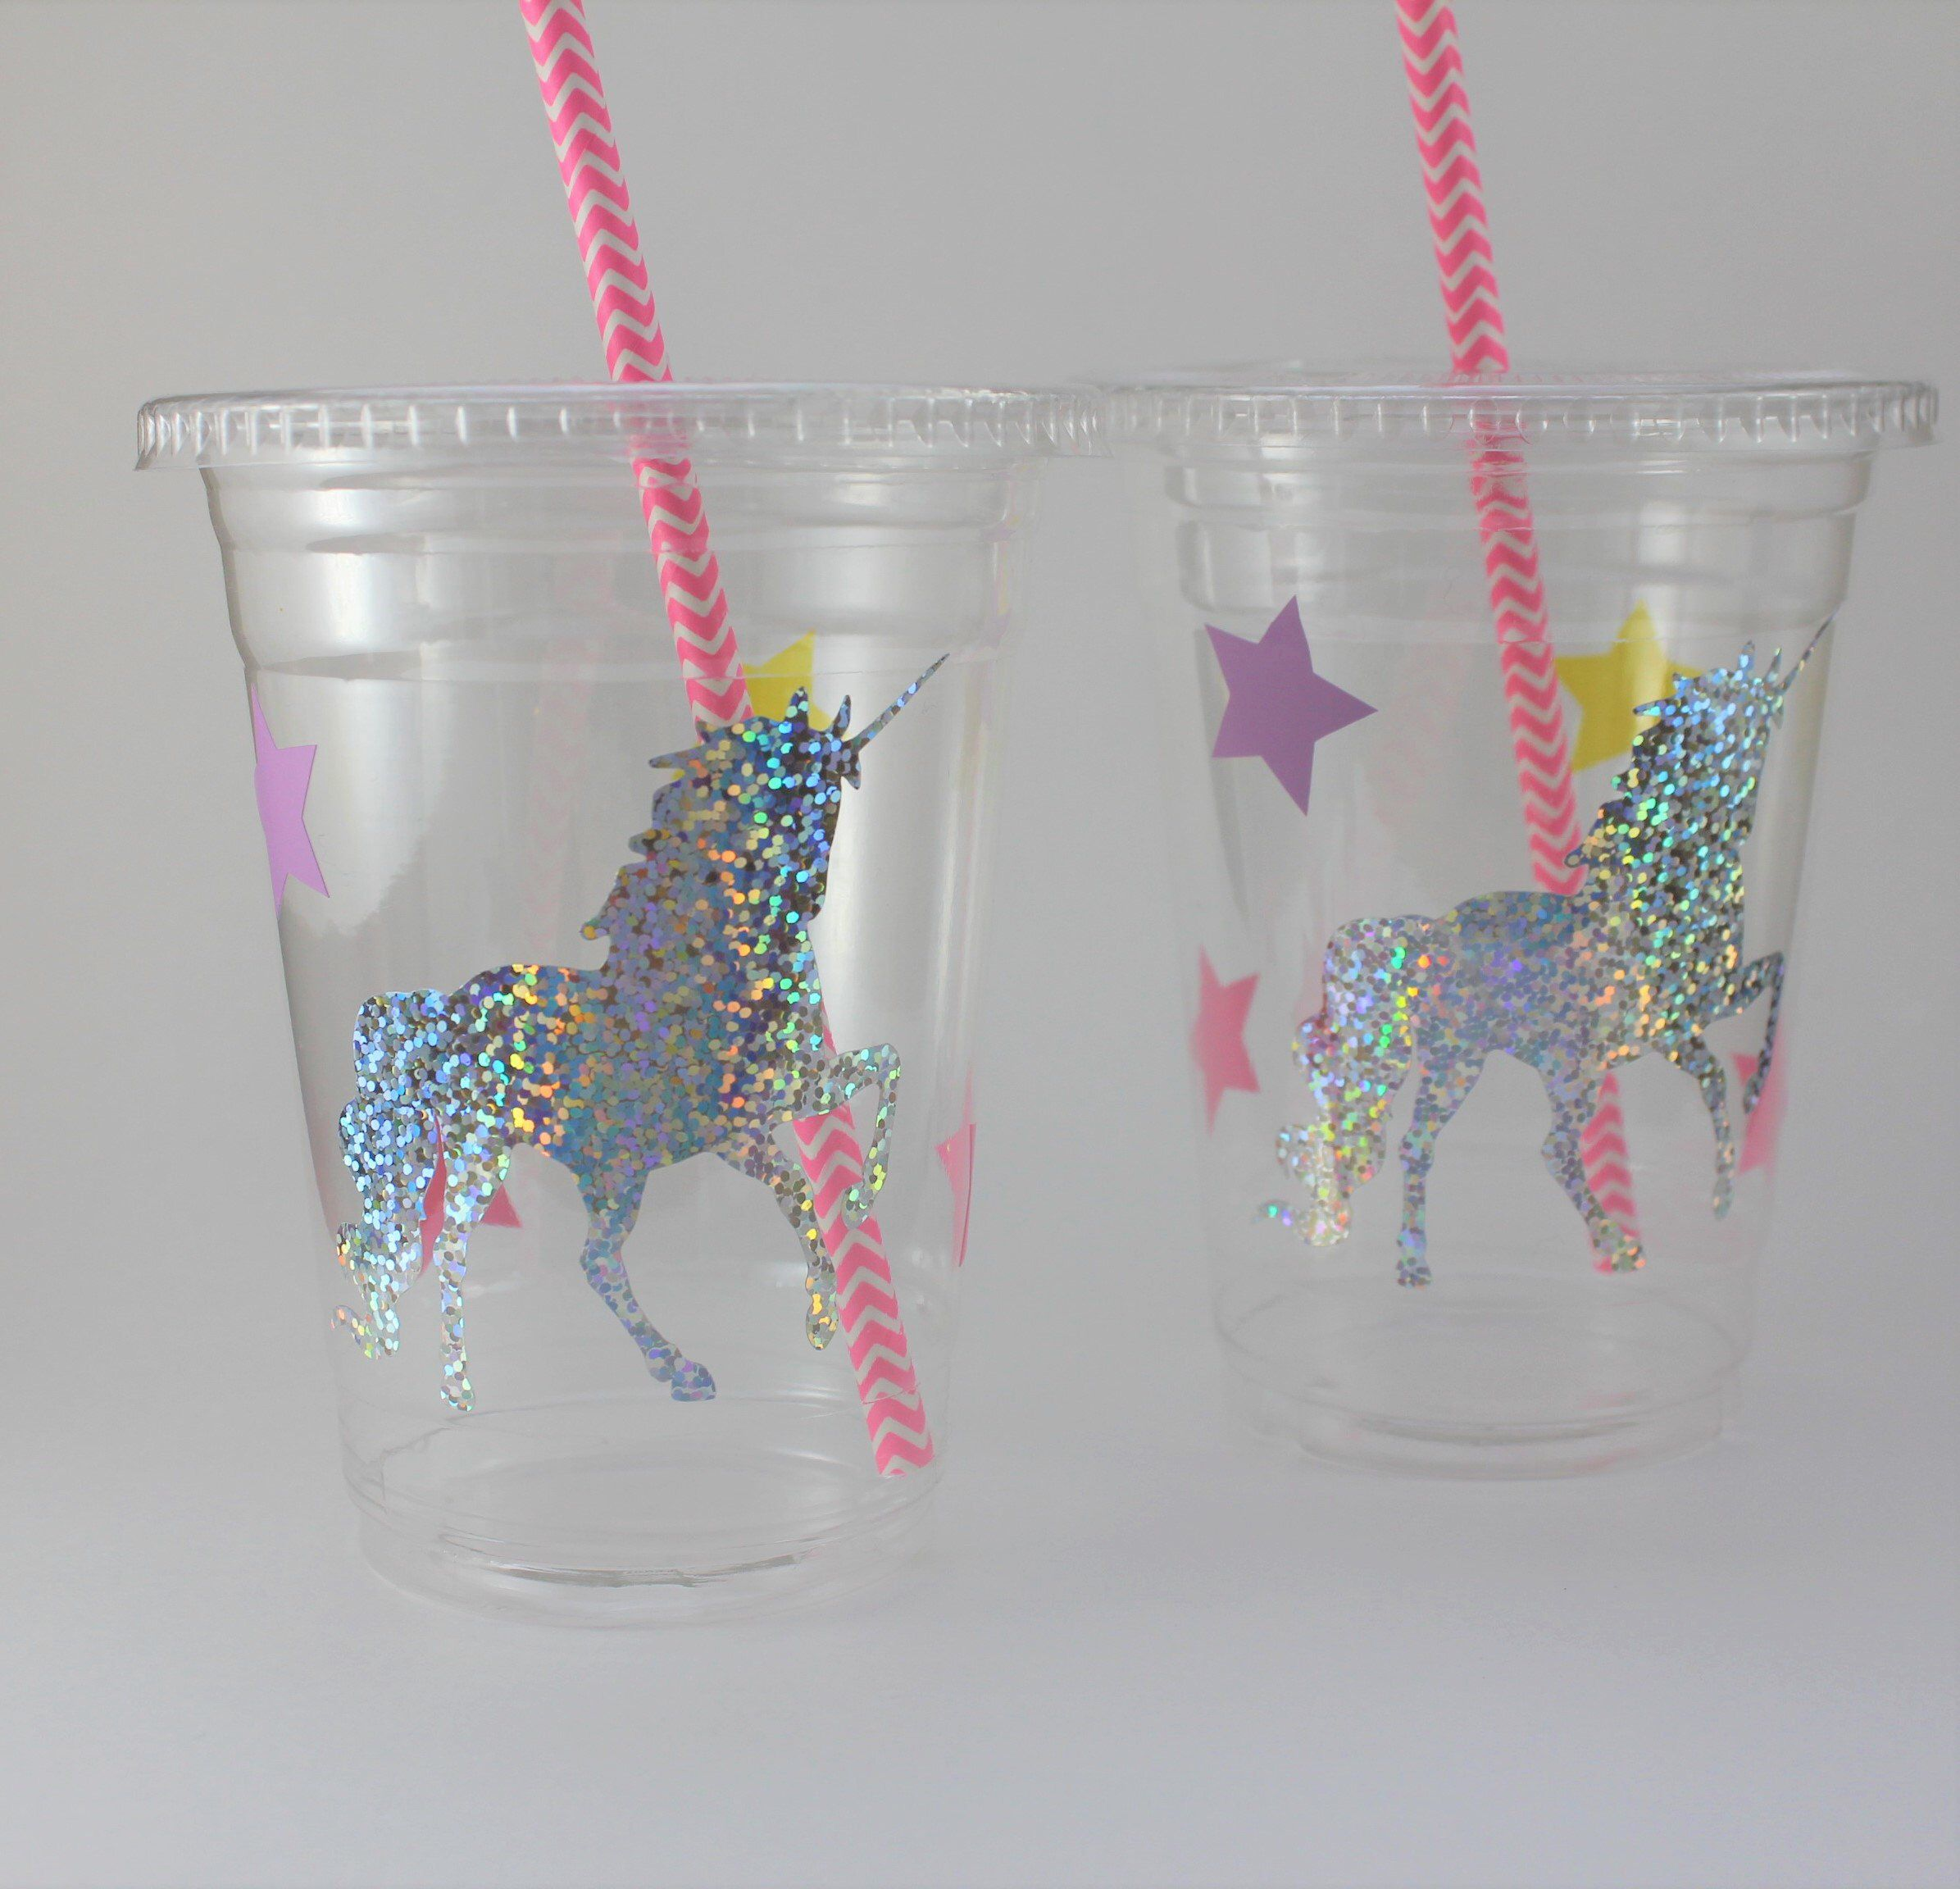 Unicorn party theme cup/unicorn cup/unicorn birthday party/unicorn party favor/unicorn party cup/unicorn disposable cup/cups/dinosaur cups Excited to share the latest addition to my shop: unicorn party theme cup, unicorn cup, unicorn birthday party, unicorn party favor, unicorn party cup, unicorn disposable cup, 16 oz cups